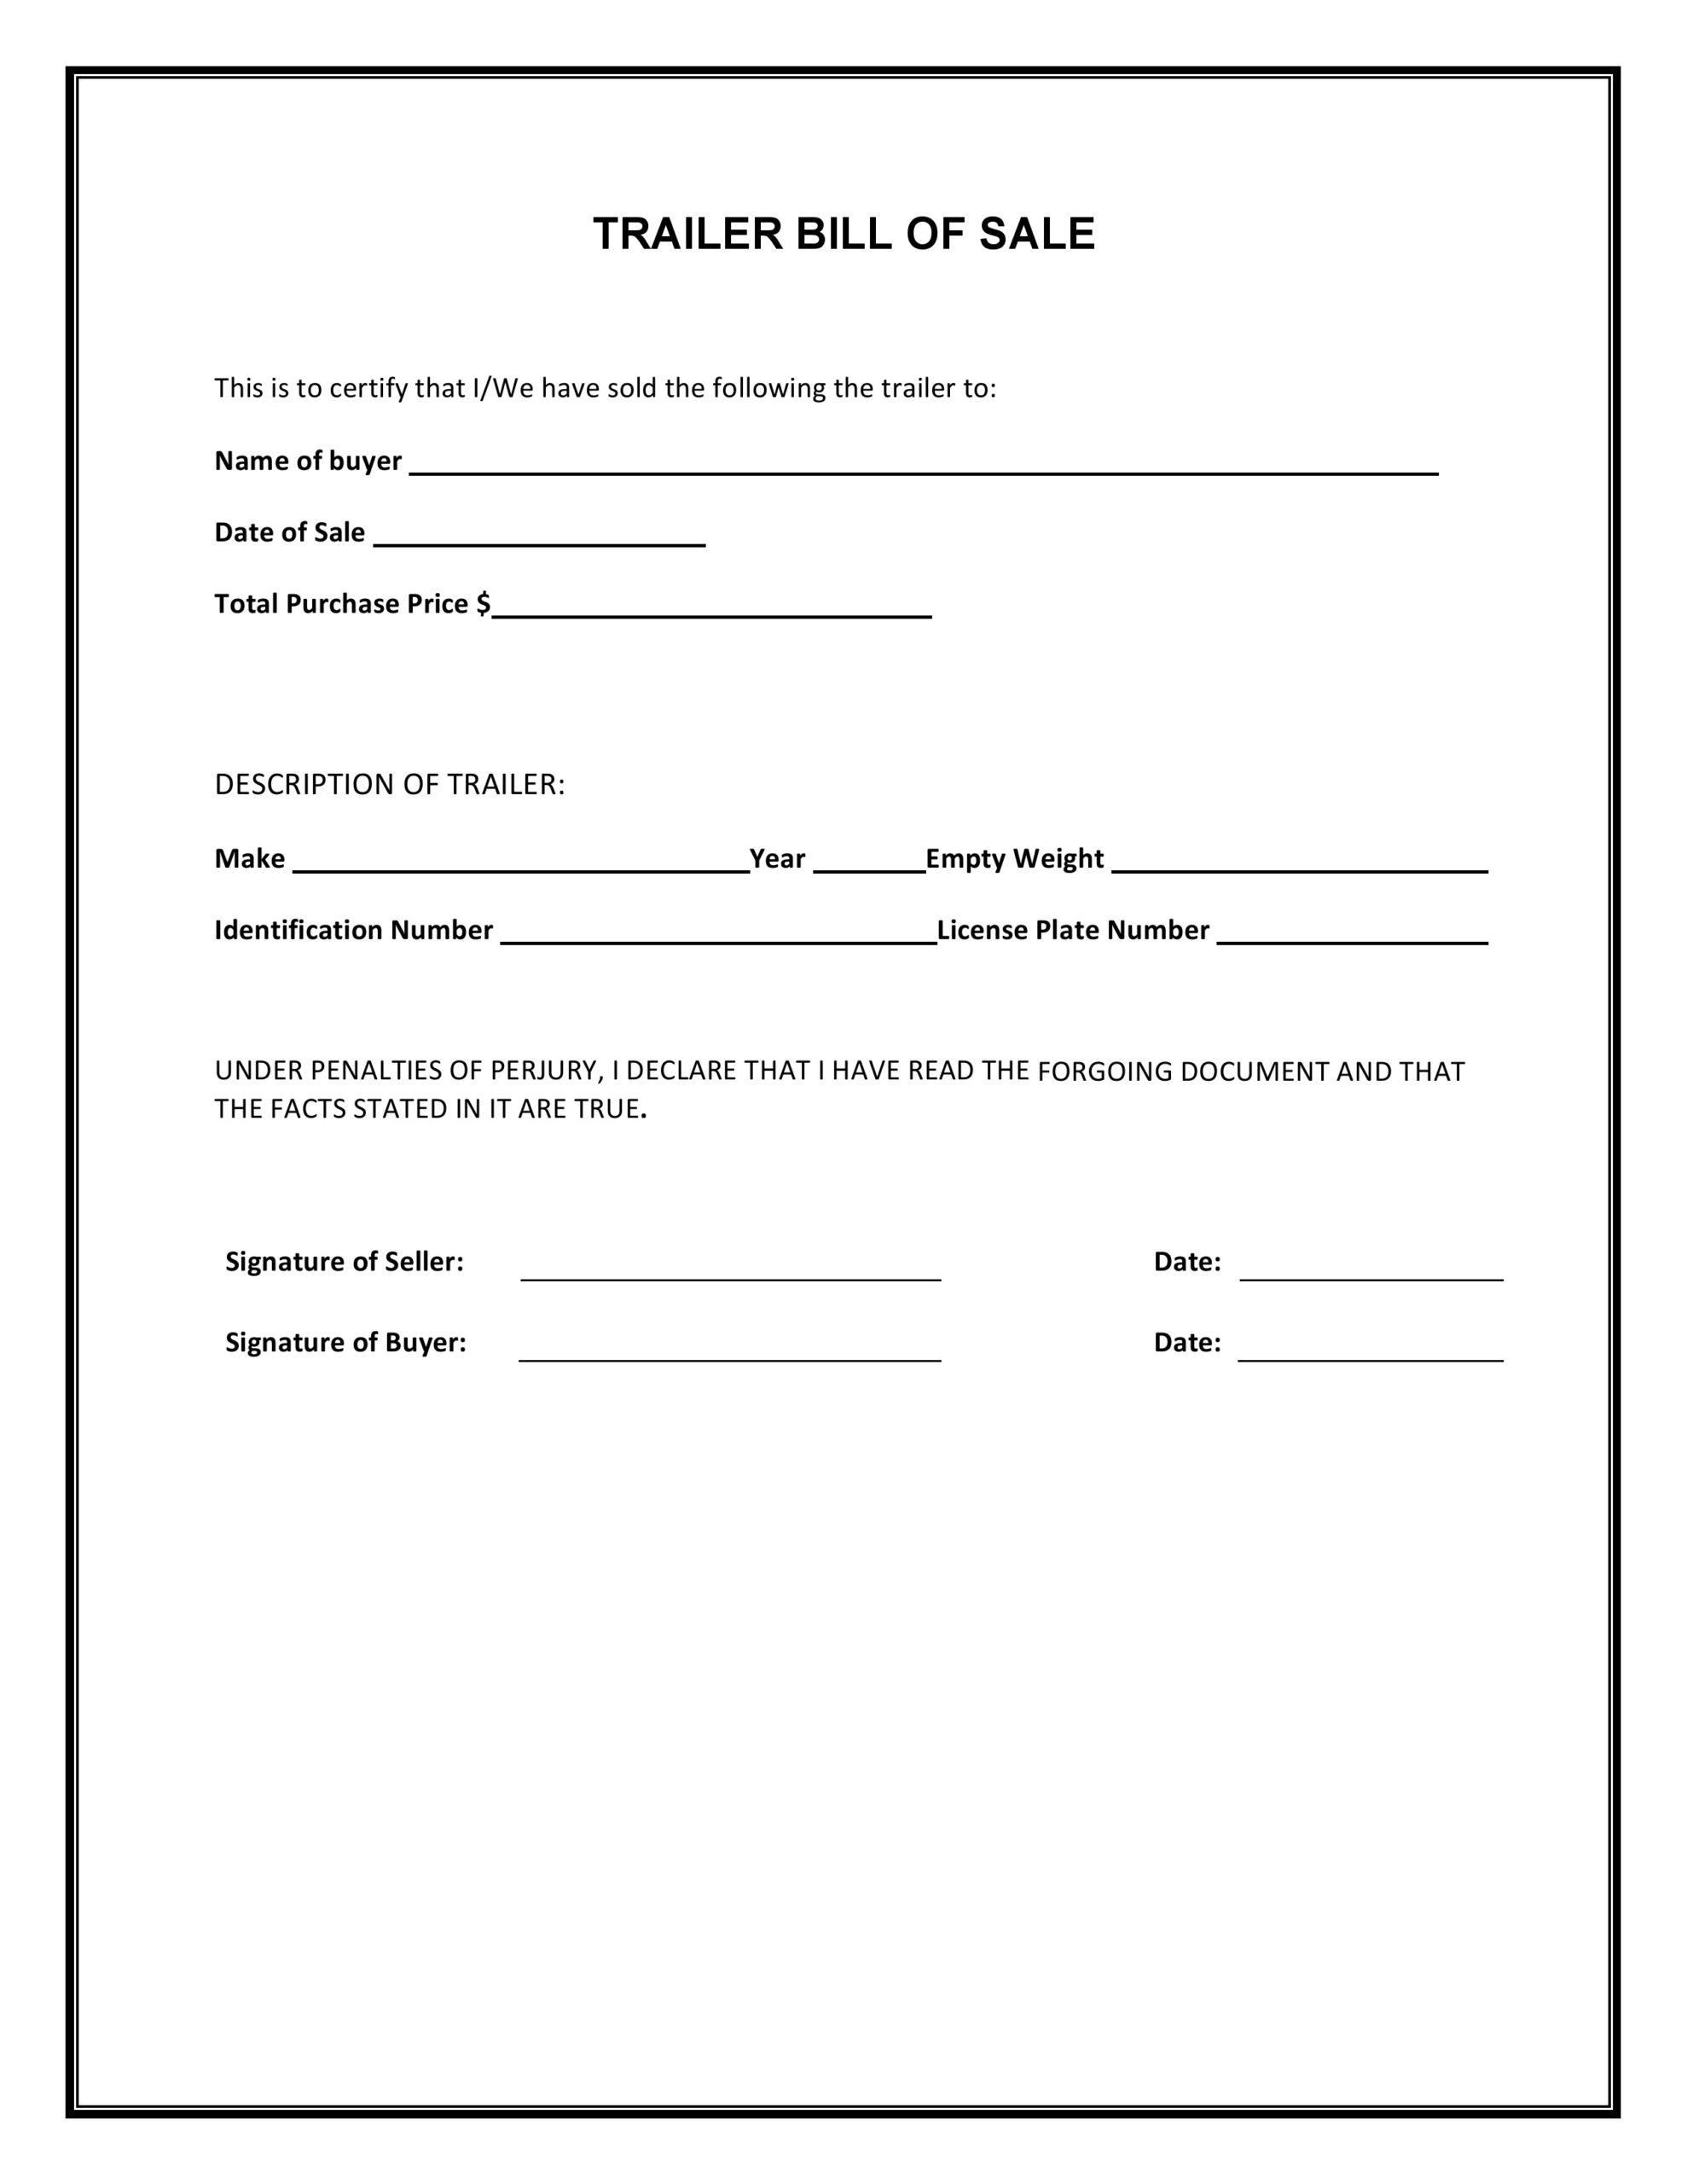 Free Trailer Bill Of Sale Form | Pdf | Word | Do It Yourself